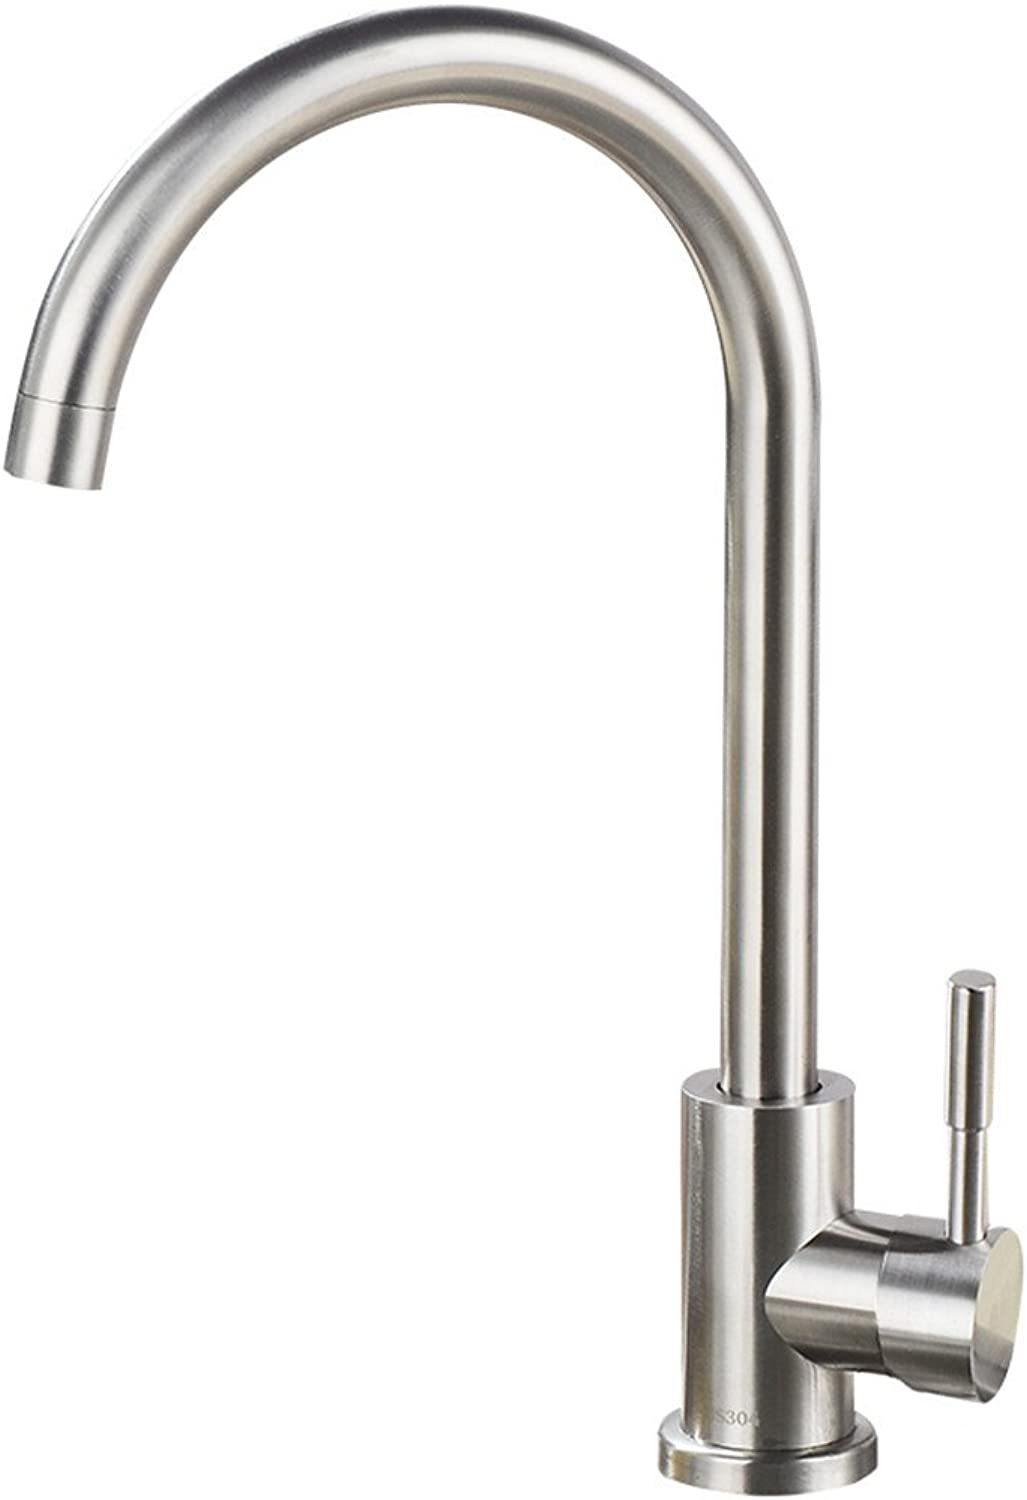 Decorry Lead 304 Stainless Steel Cold Kitchen Faucet 360 Degree redation Lavatory